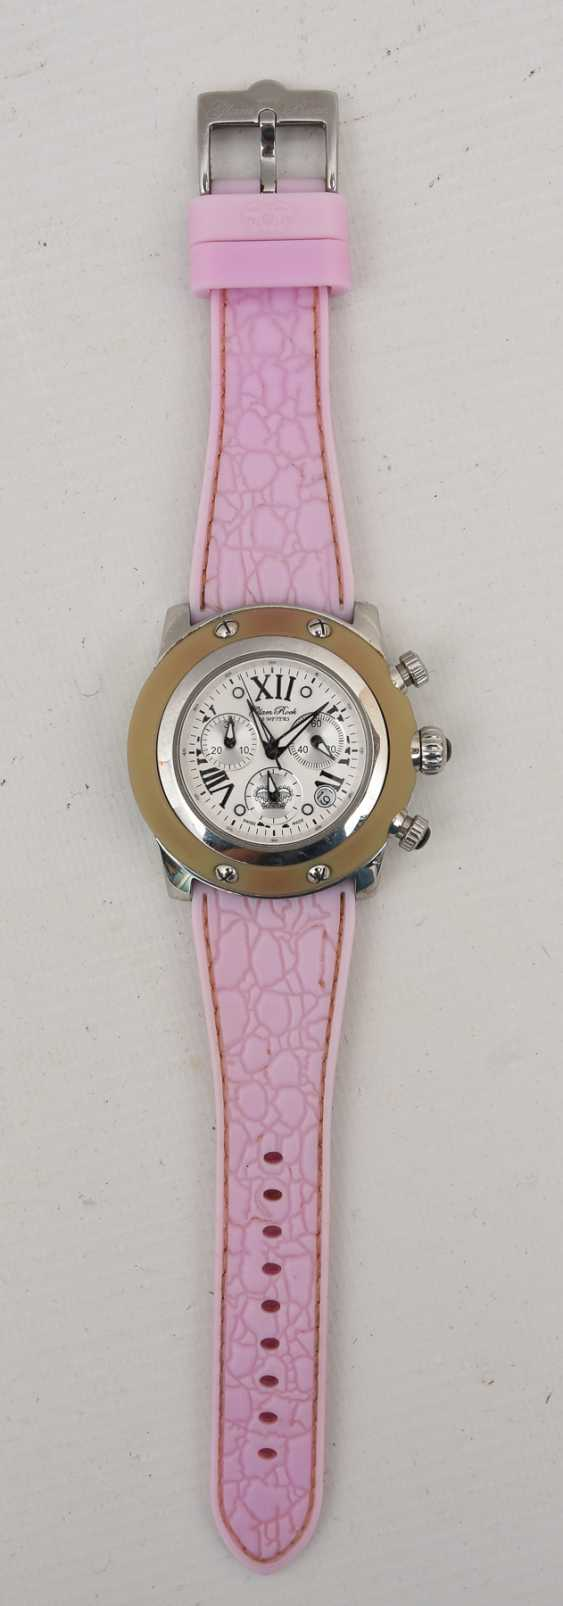 GLAM ROCK women's WATCH PINK, stainless steel/silicone, around 2000 - photo 1